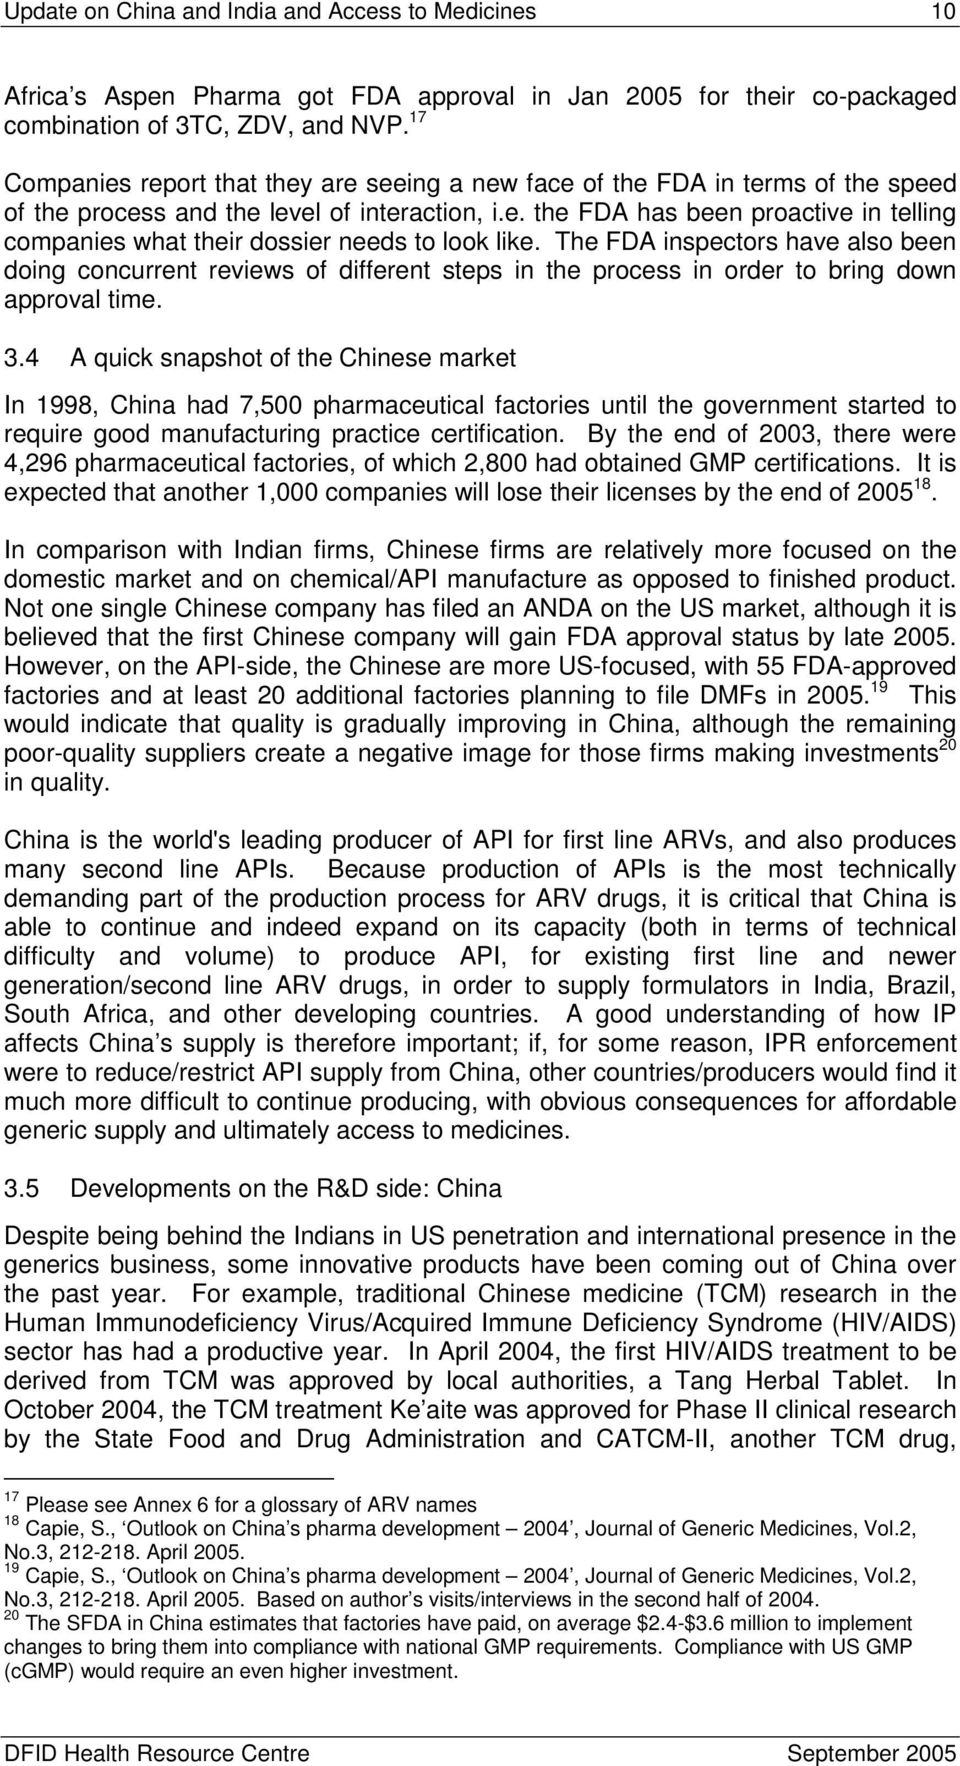 A Briefing Paper for DFID: Update on China and India and